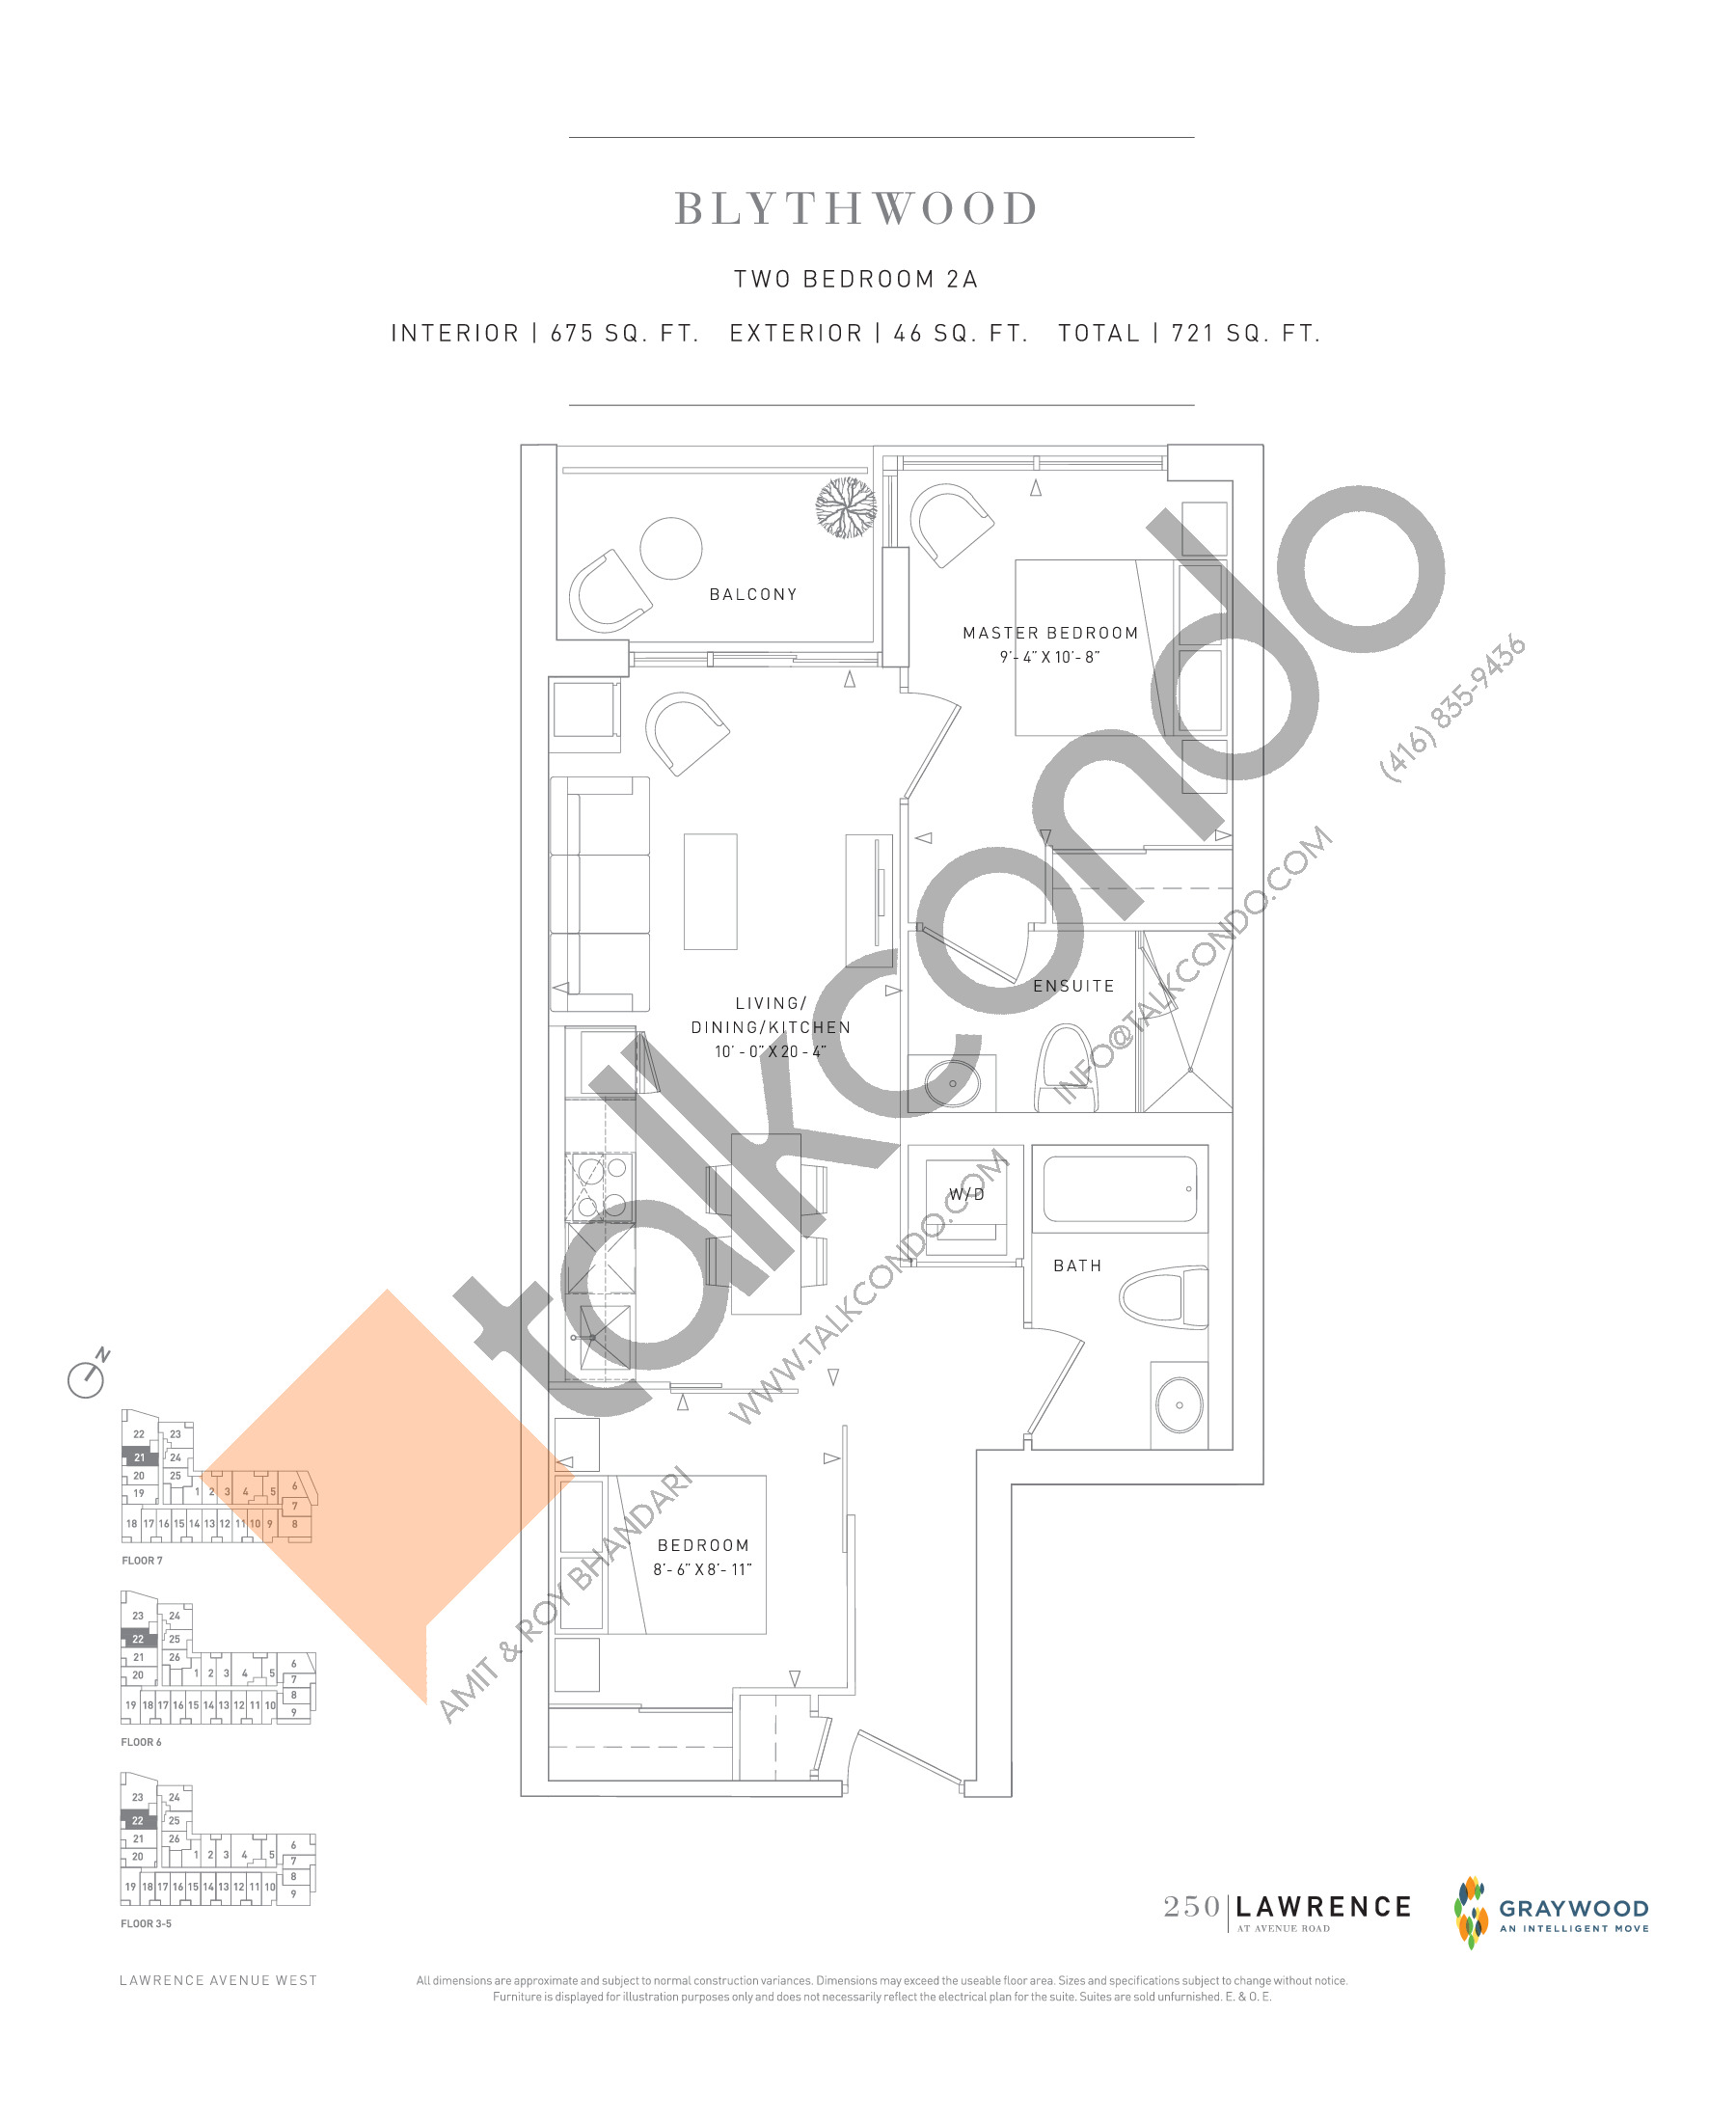 Blythwood Floor Plan at 250 Lawrence Avenue West Condos - 675 sq.ft